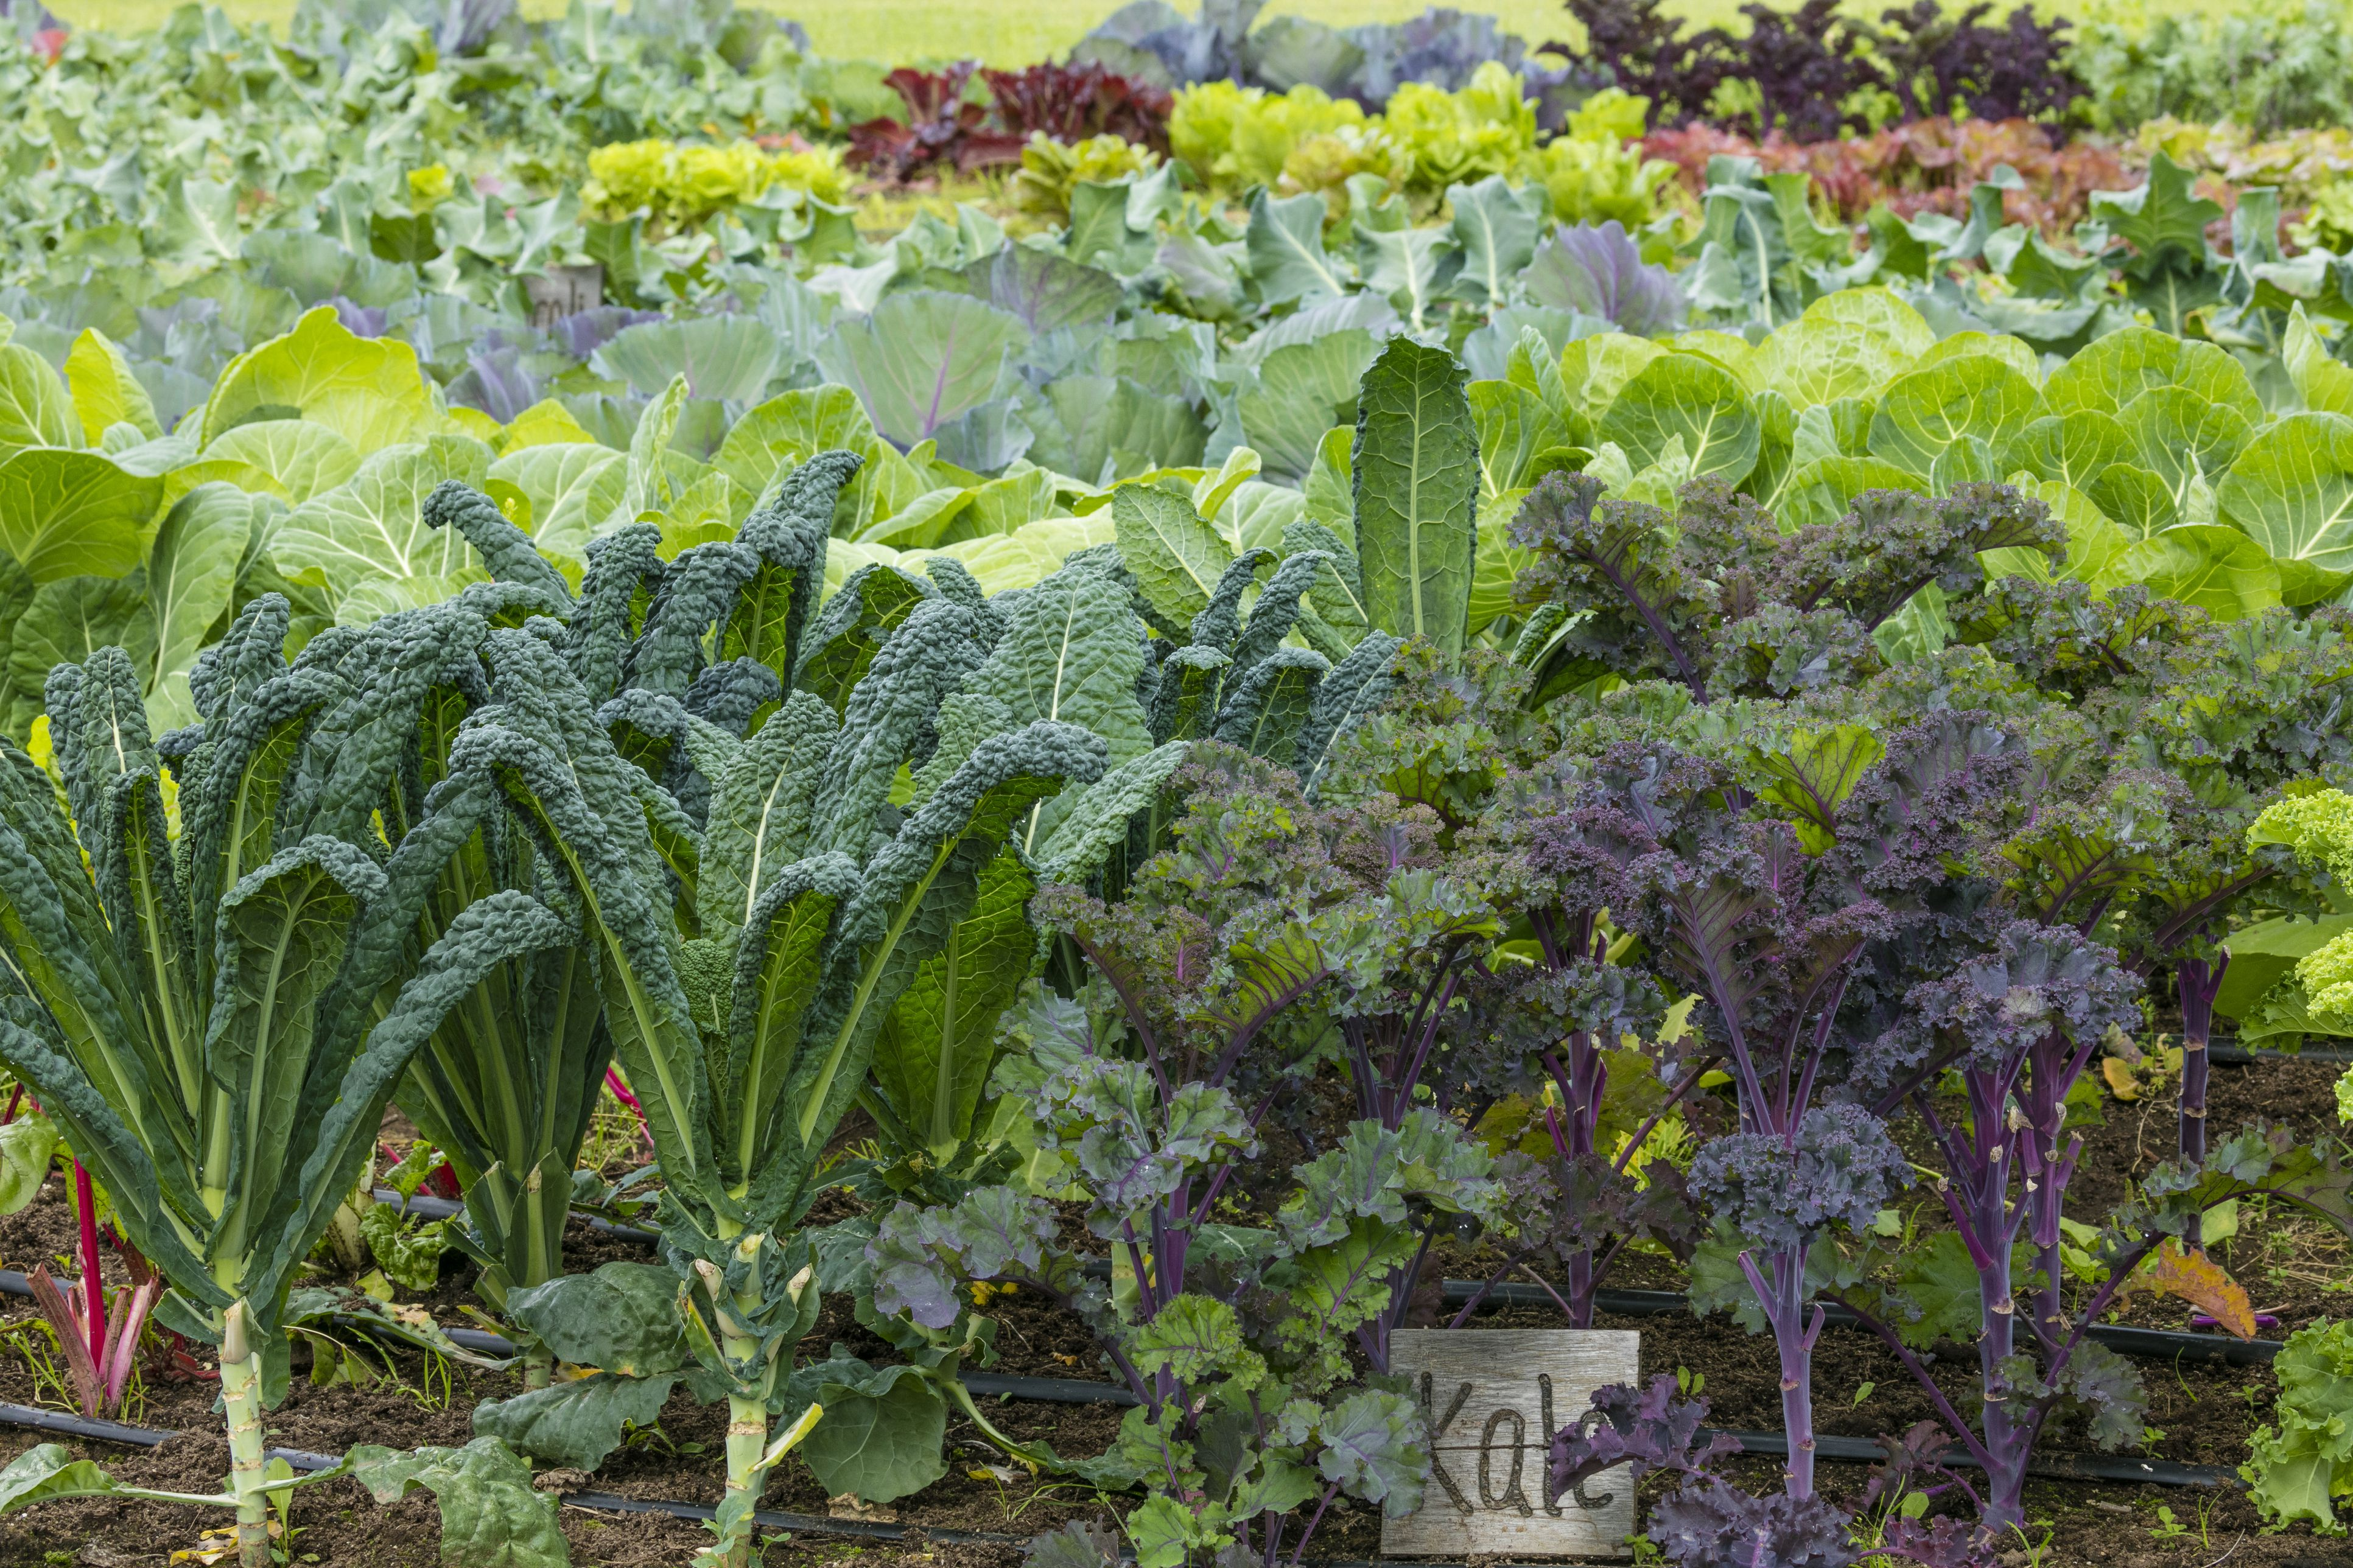 How To Grow And Care For Kale